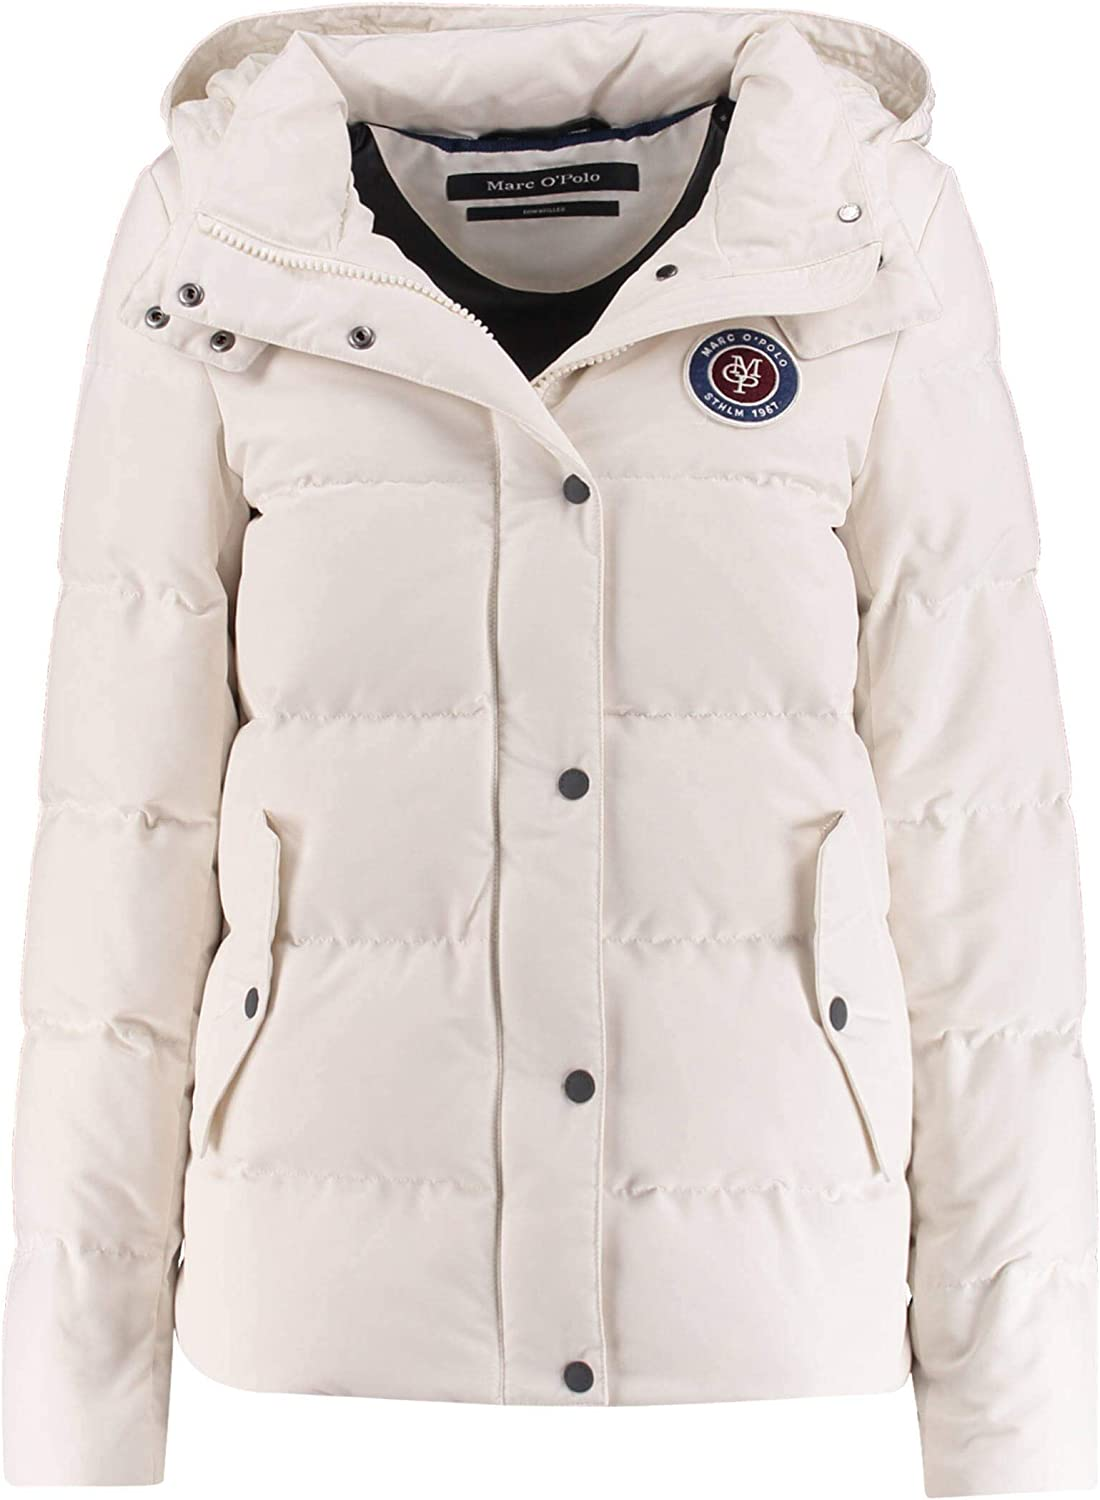 Marc O'Polo Damen Jacket, Filled with real down, deta